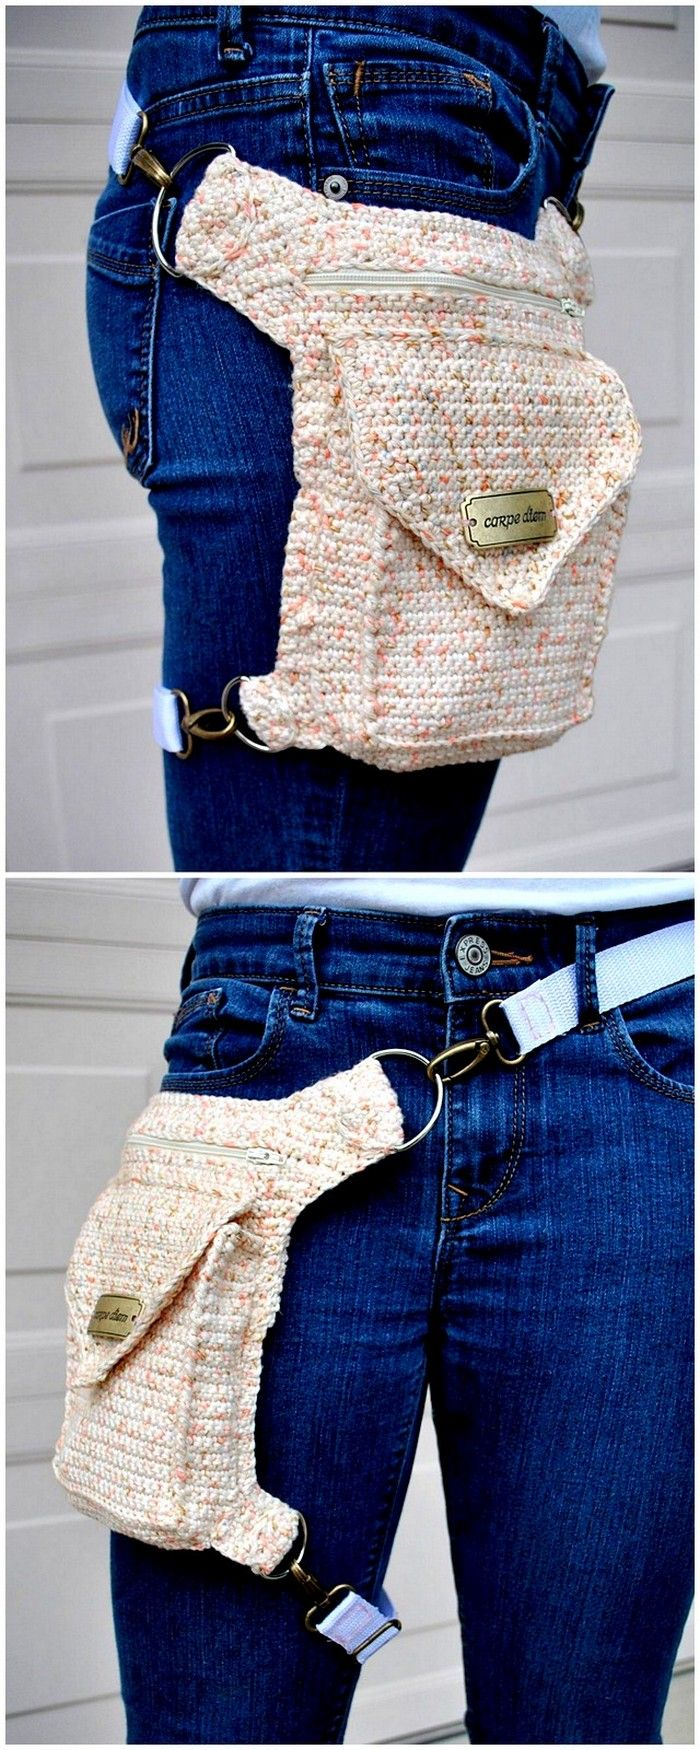 50 Unique Crochet Ideas For Ladies Hand Bags And More